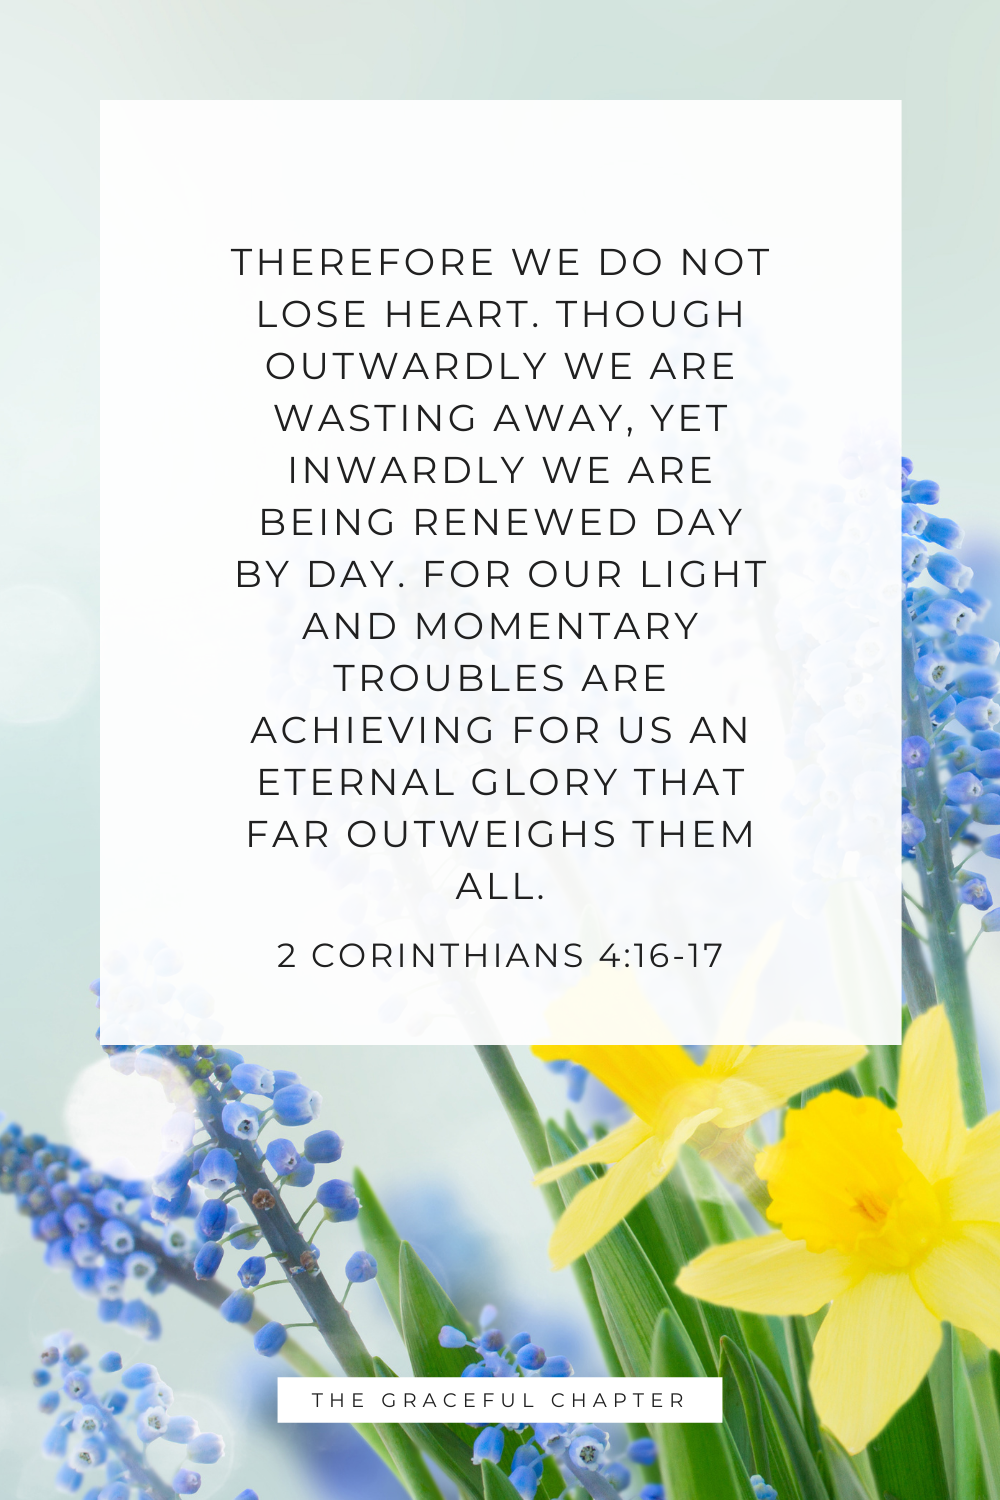 Therefore we do not lose heart. Though outwardly we are wasting away, yet inwardly we are being renewed day by day. For our light and momentary troubles are achieving for us an eternal glory that far outweighs them all. 2 Corinthians 4:16-17